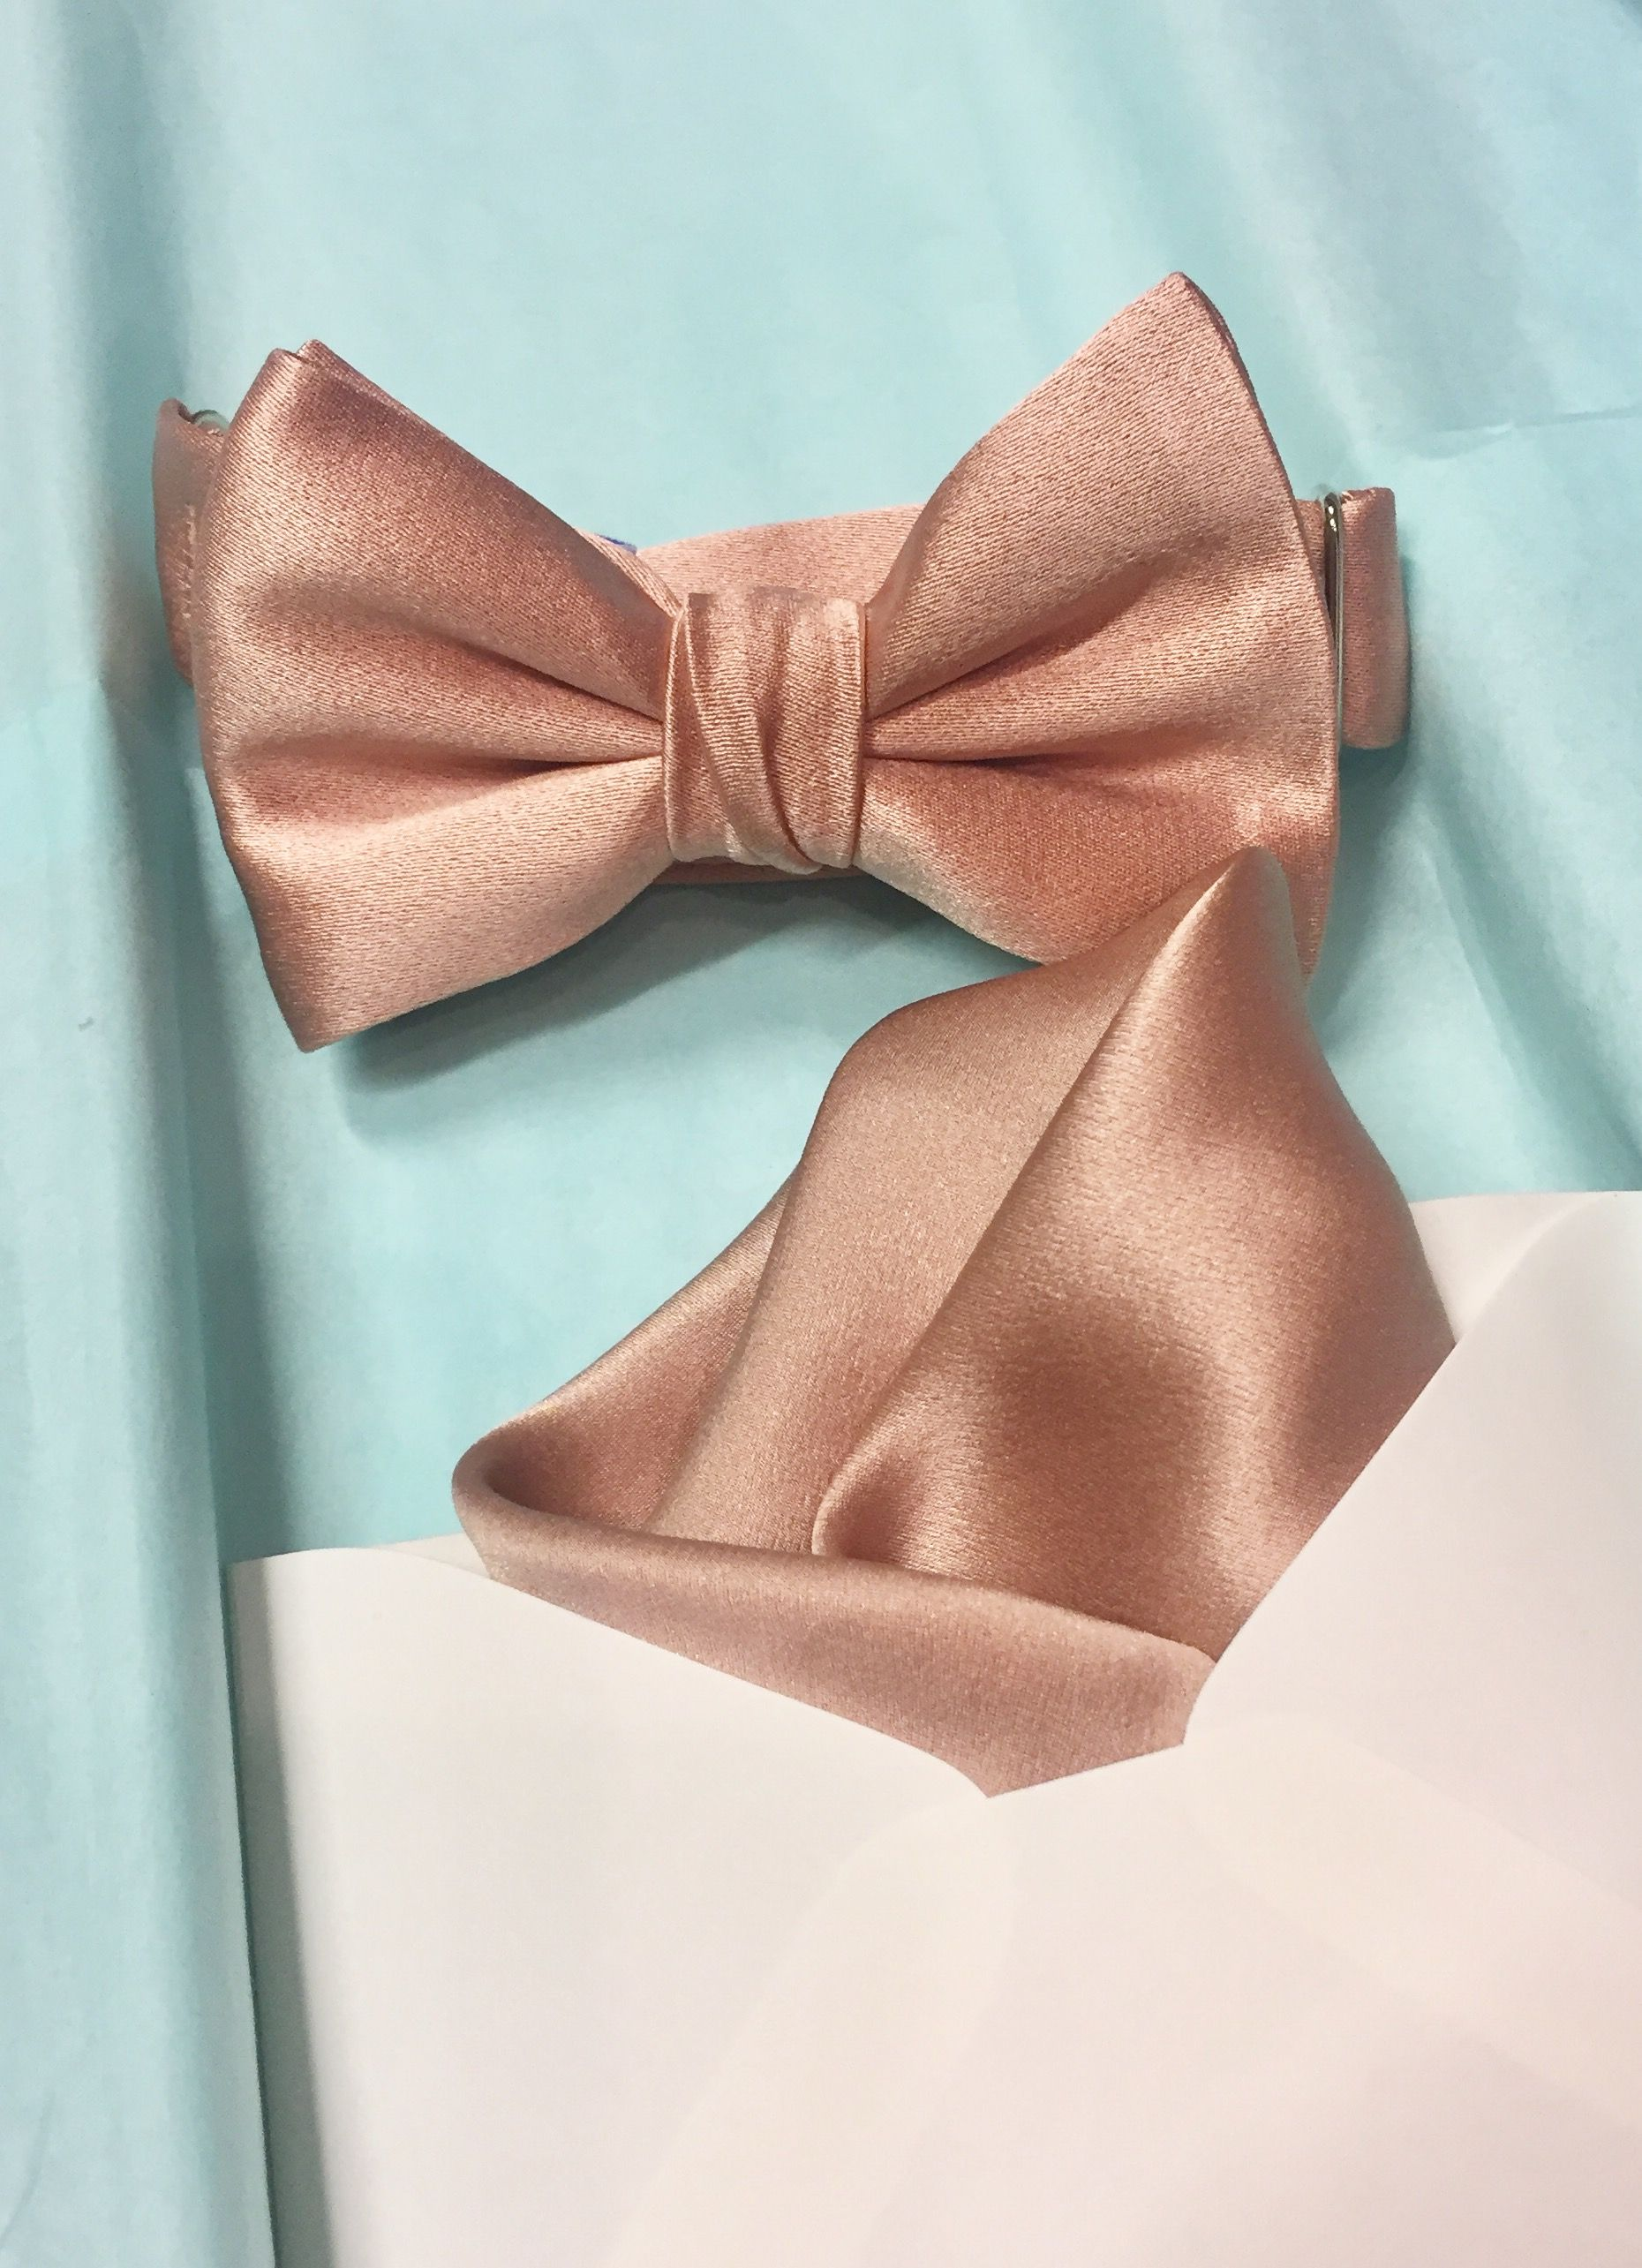 f5cecf640e51 Rose gold bow tie and pocket square for a wedding day. | Rose Gold ...